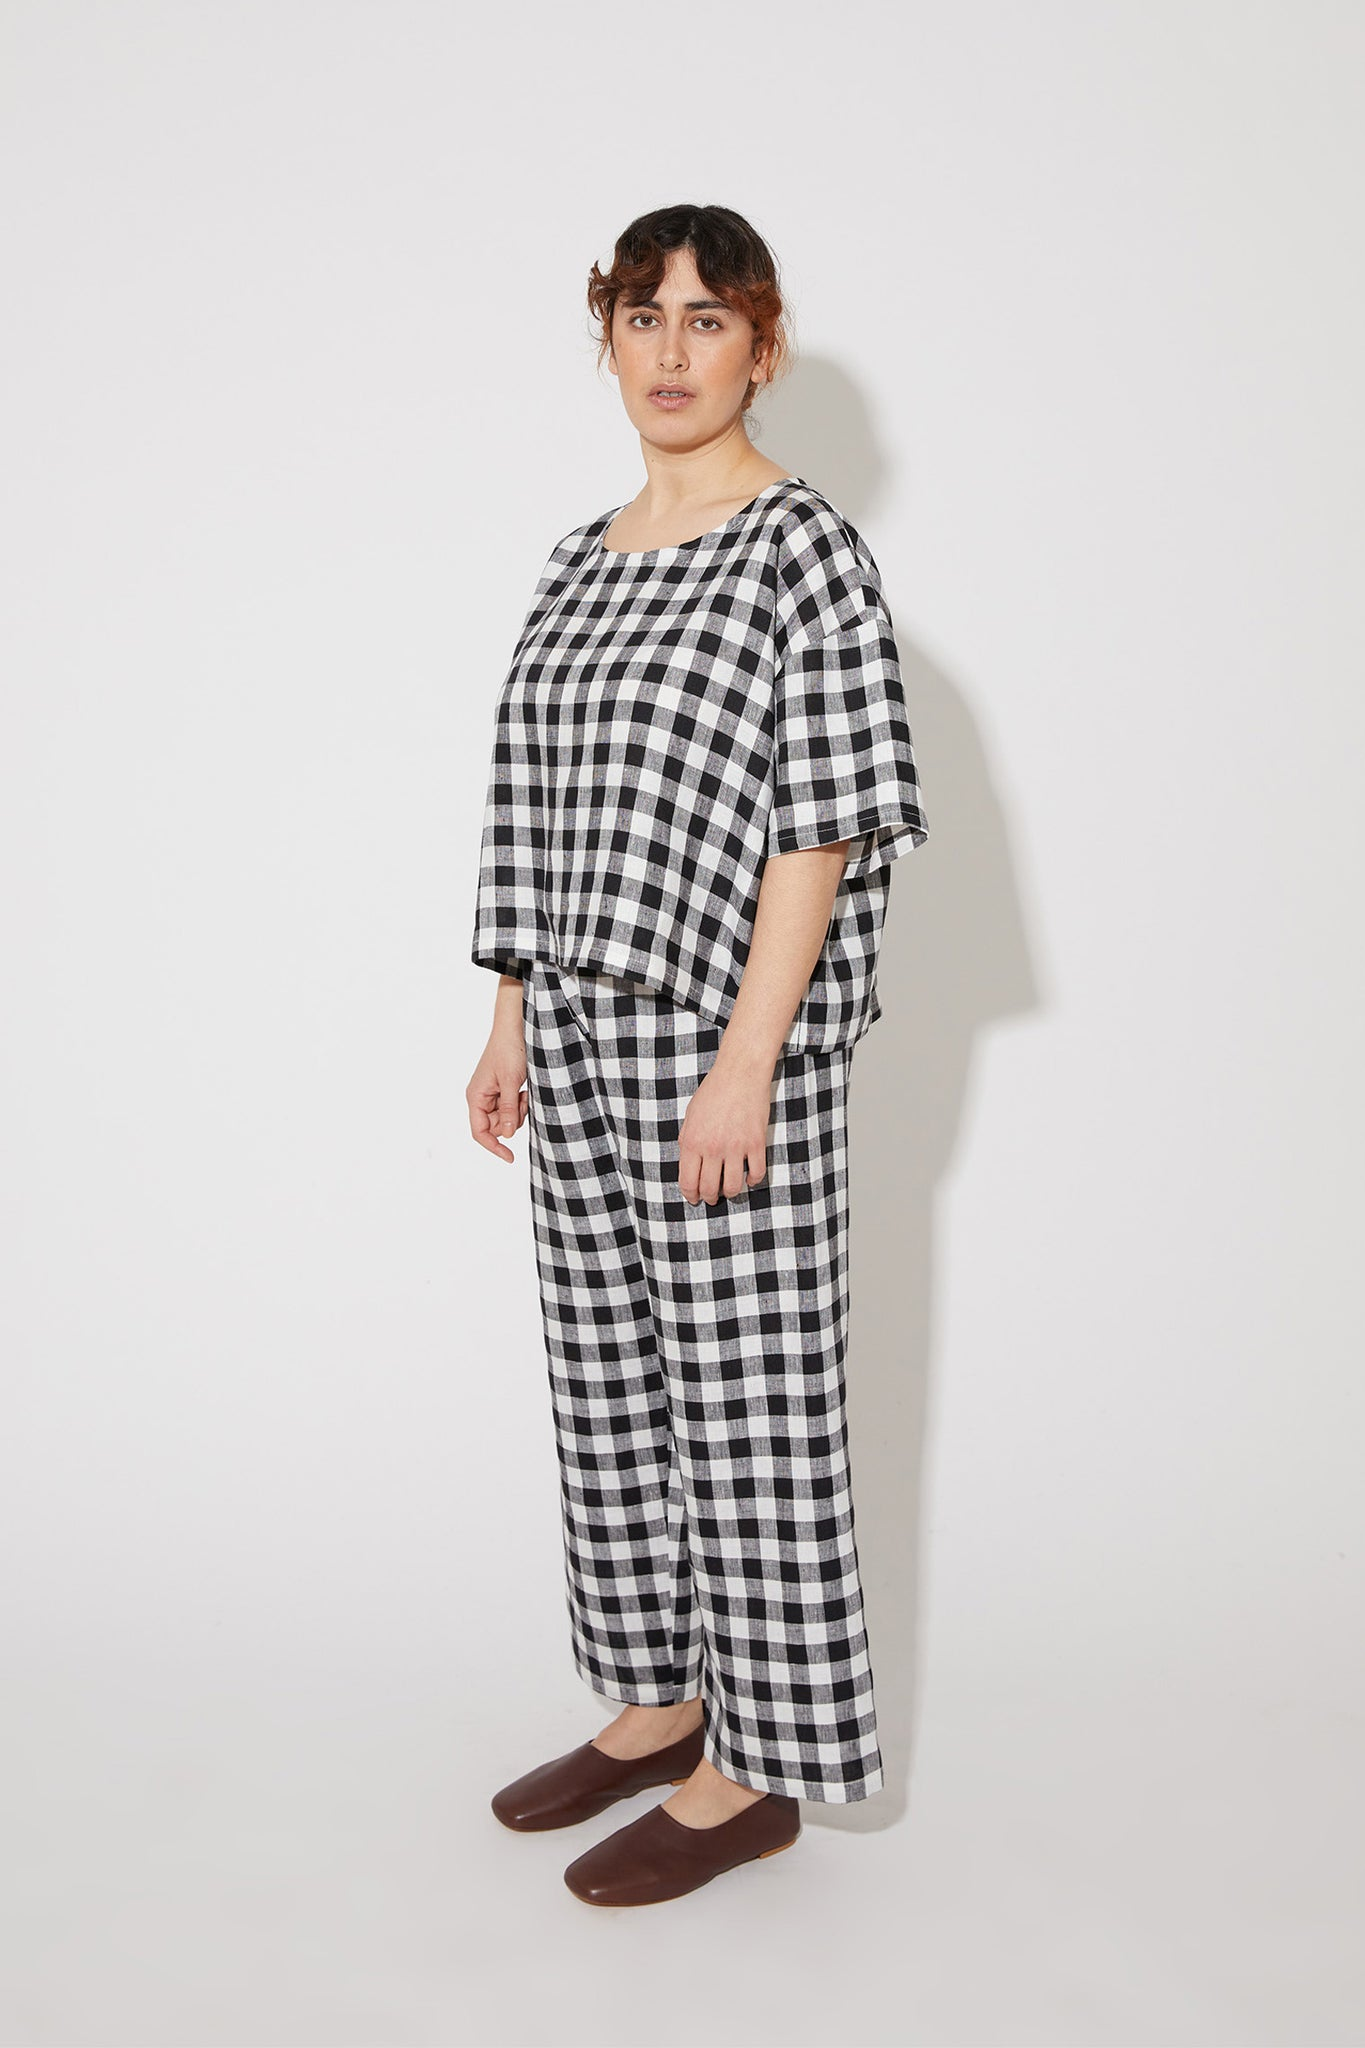 Nika cropped top in black-white gingham linen